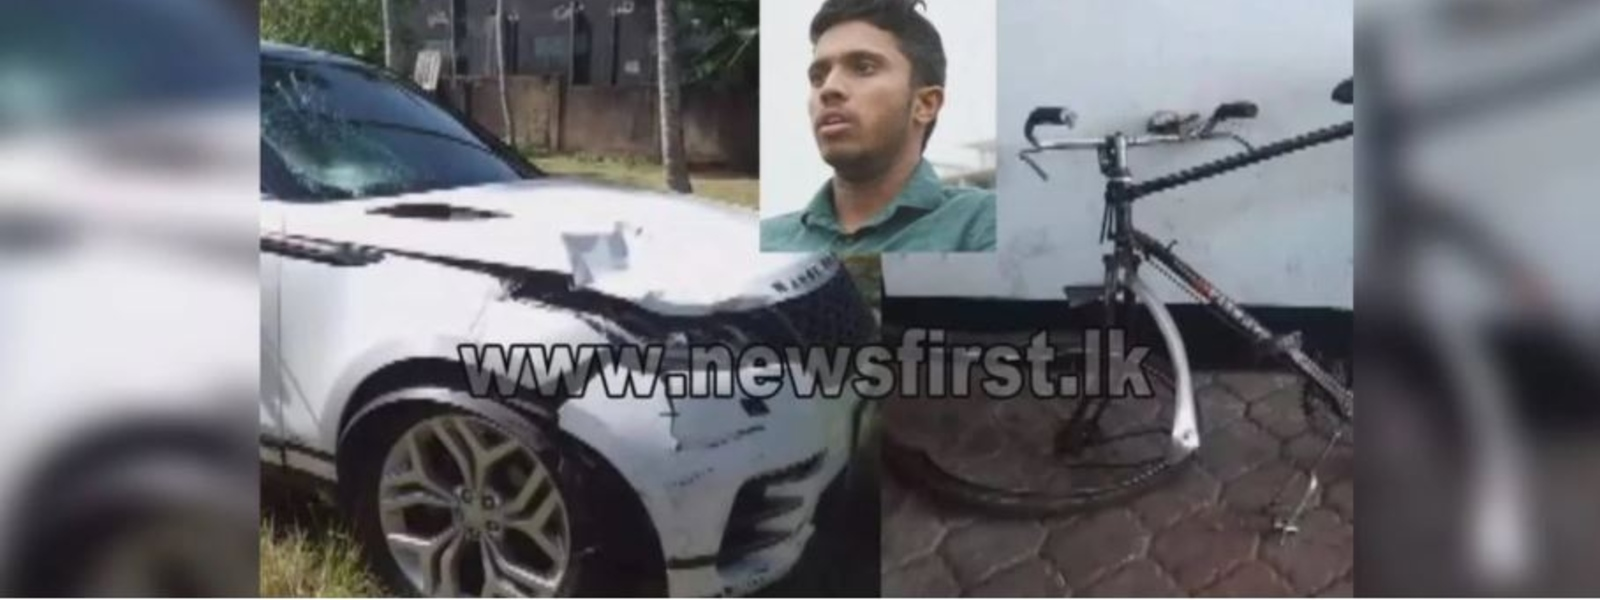 Sri Lankan national cricketer, Kusal Mendis arrested over an accident, to be produced in court today